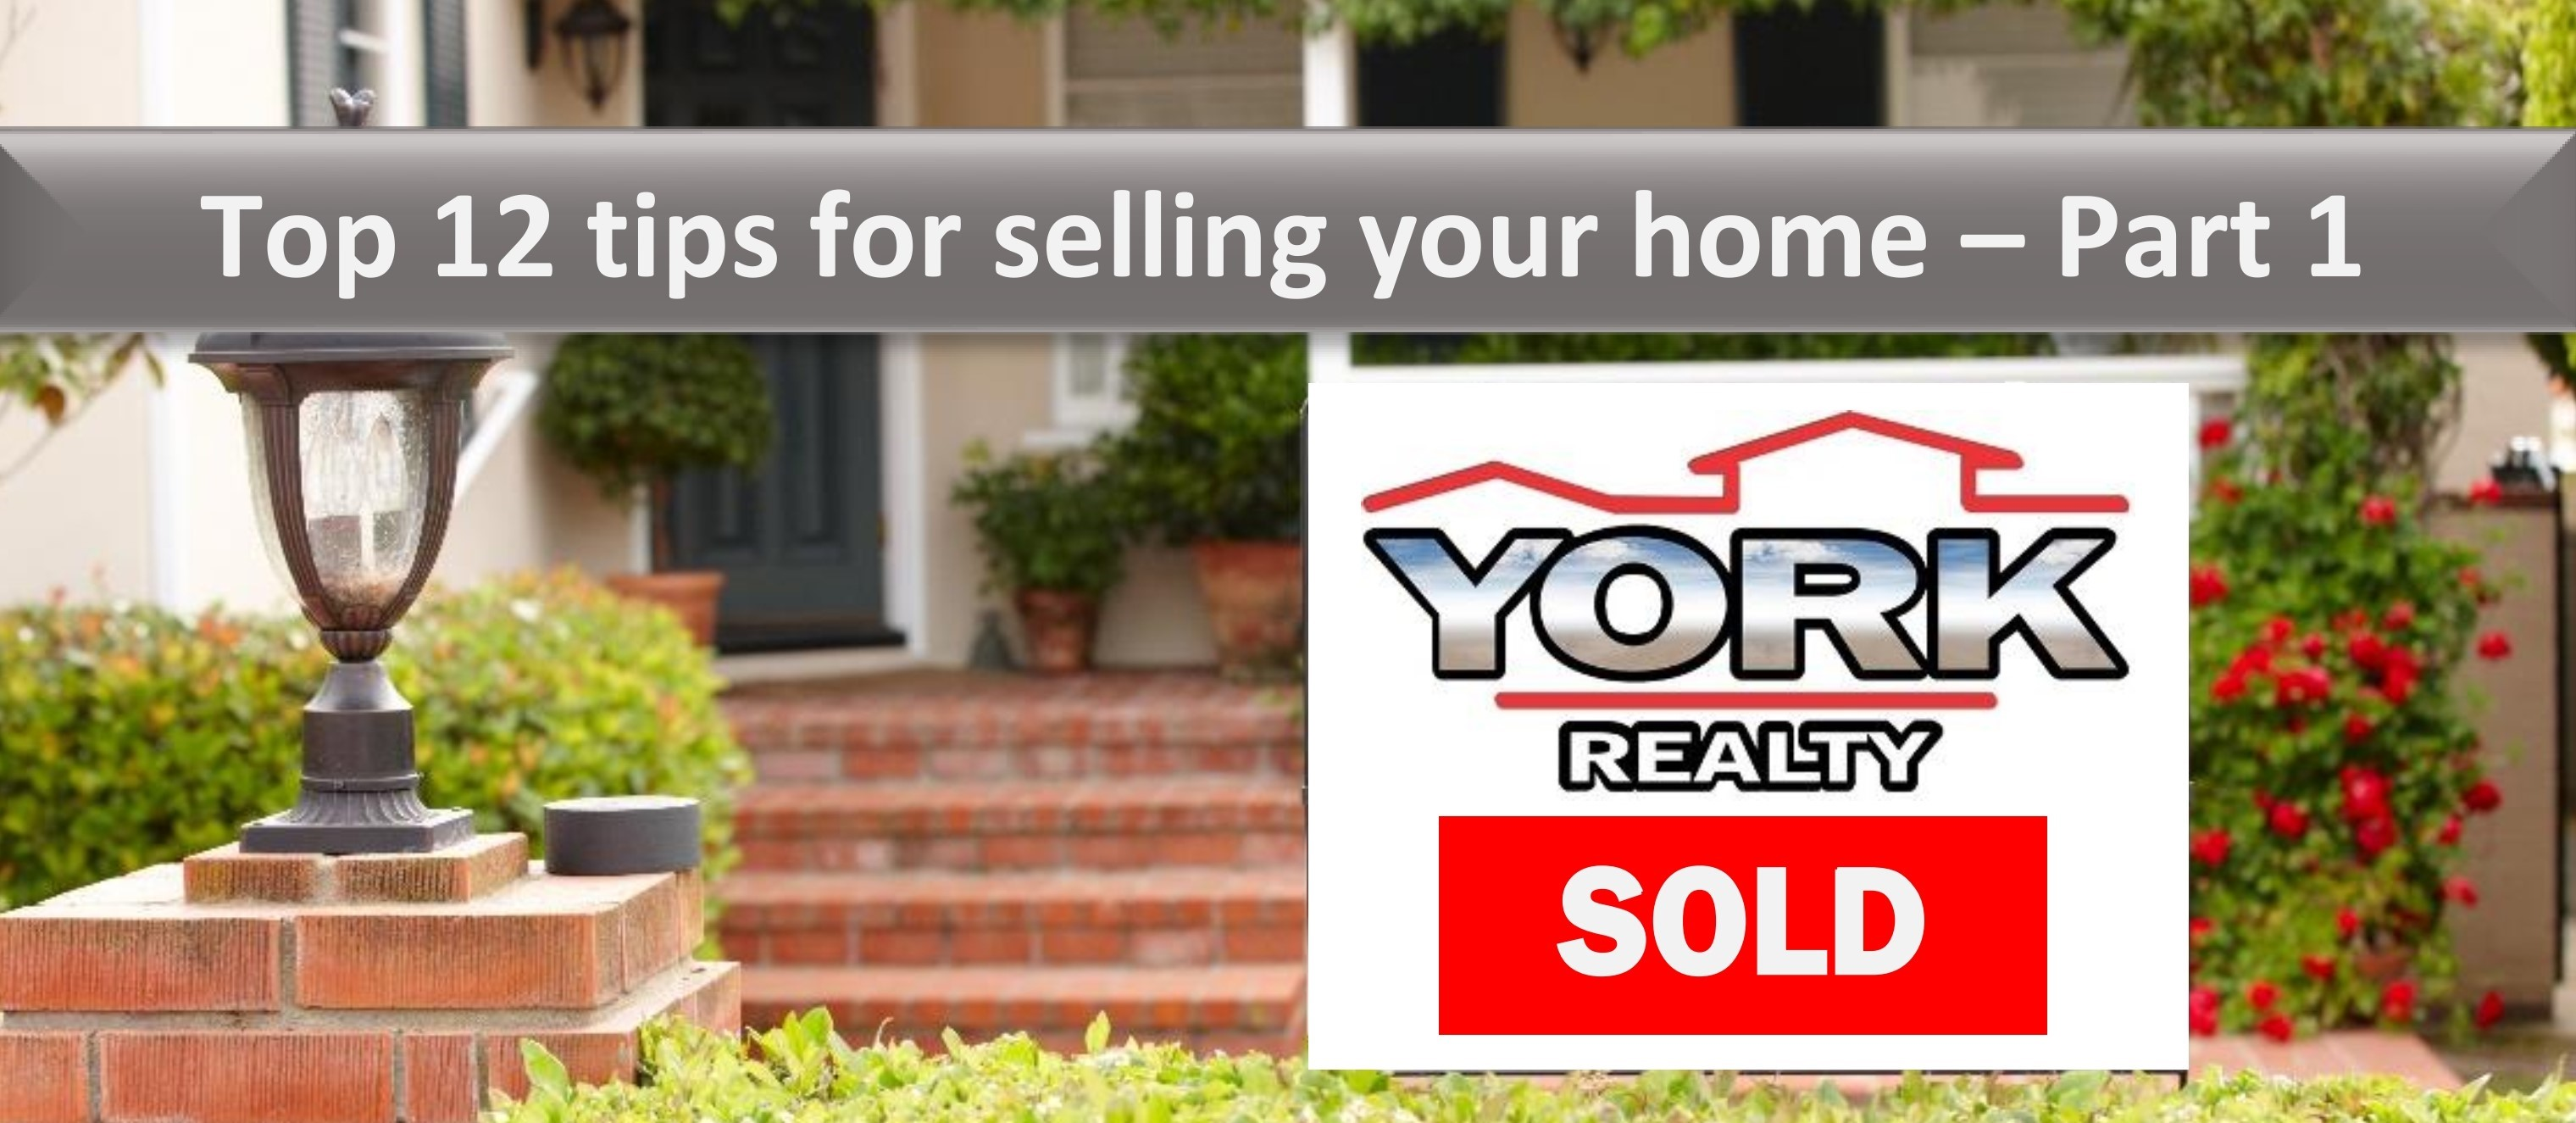 Top Tips for Selling Your Home - Part 1